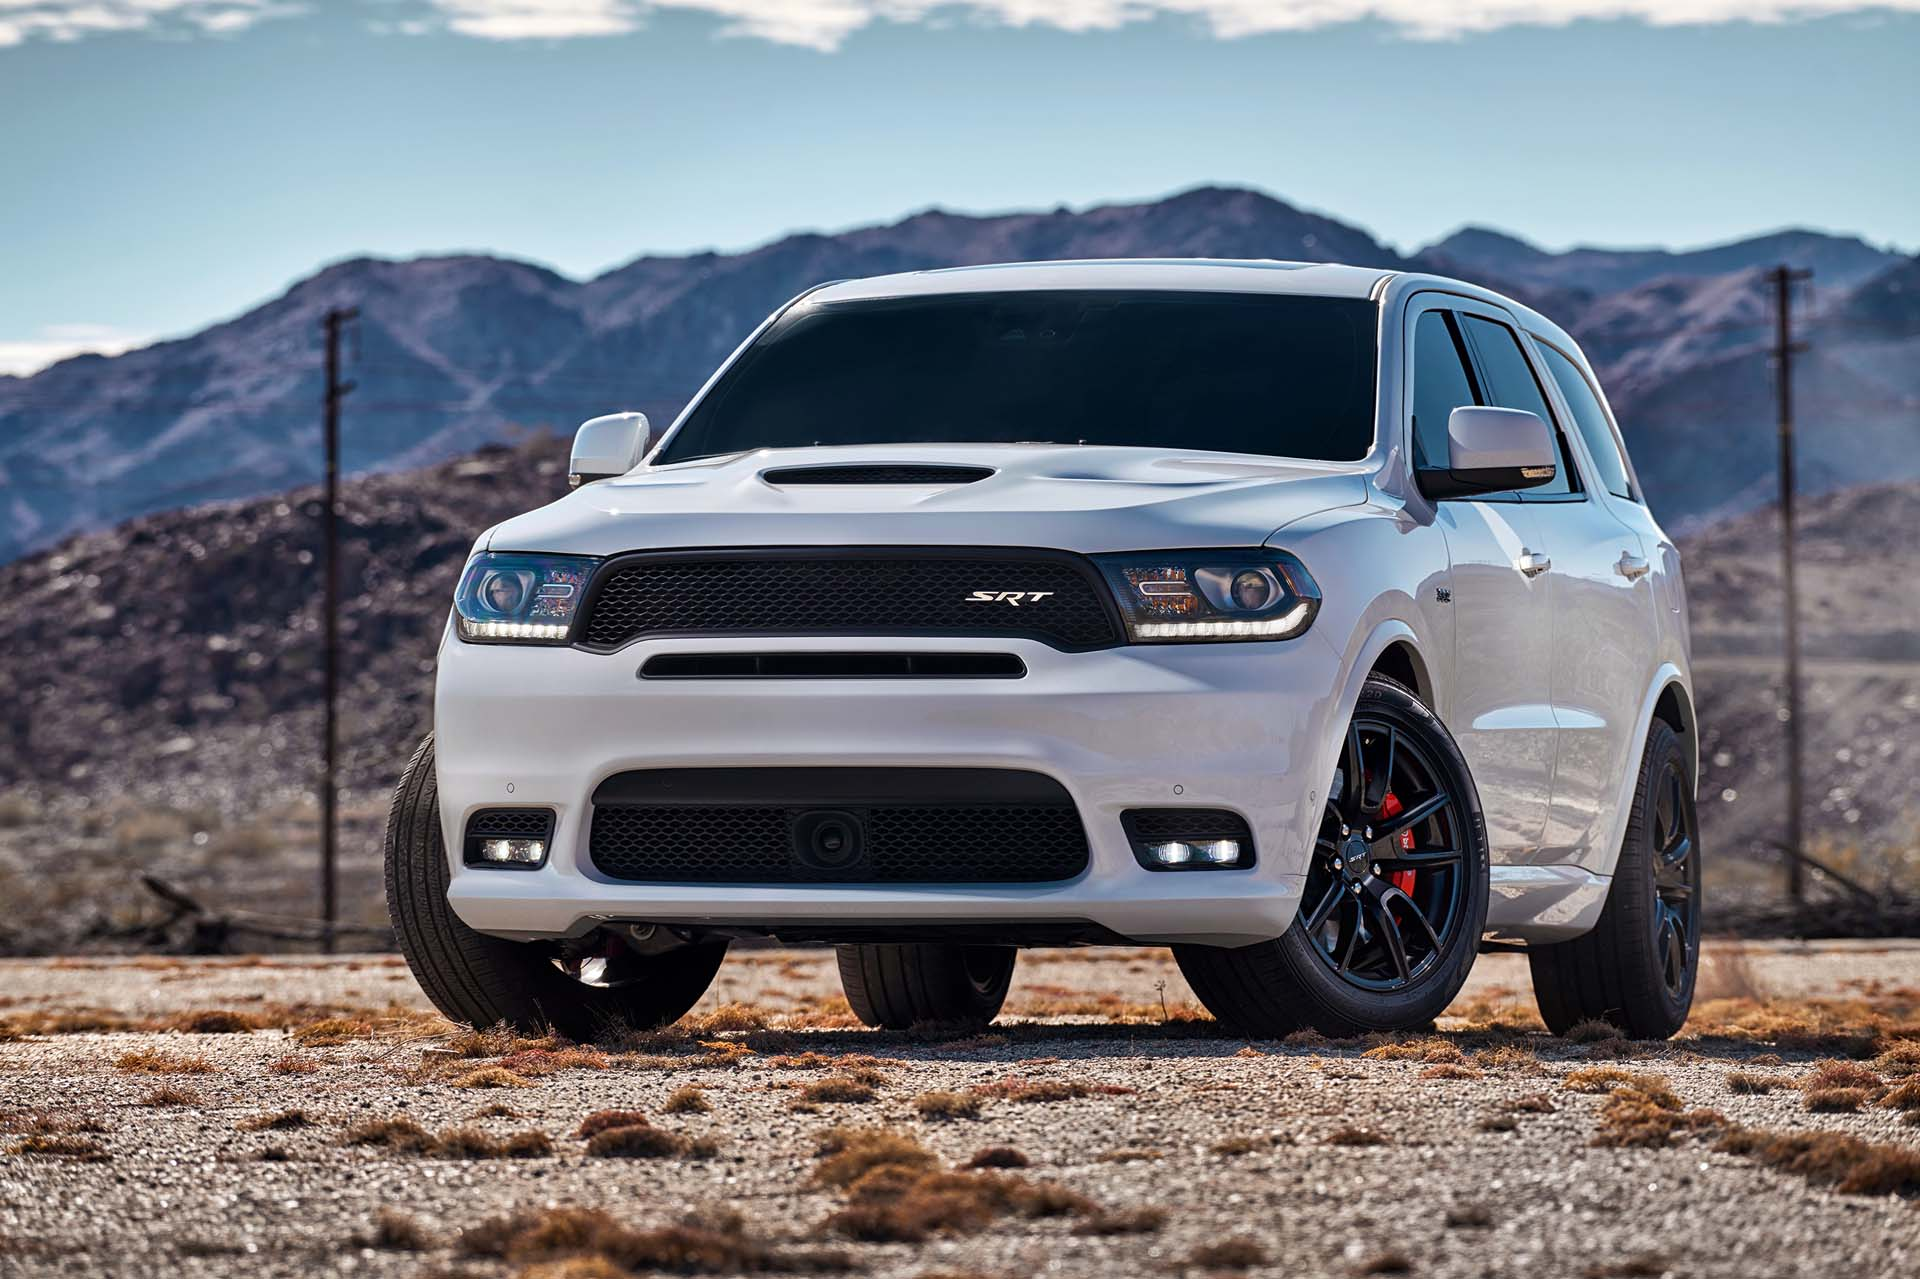 2018 Jeep Grand Cherokee Trackhawk Hellcat >> 2018 Dodge Durango SRT: 475-horsepower, 3-row SUV starts at $64,090